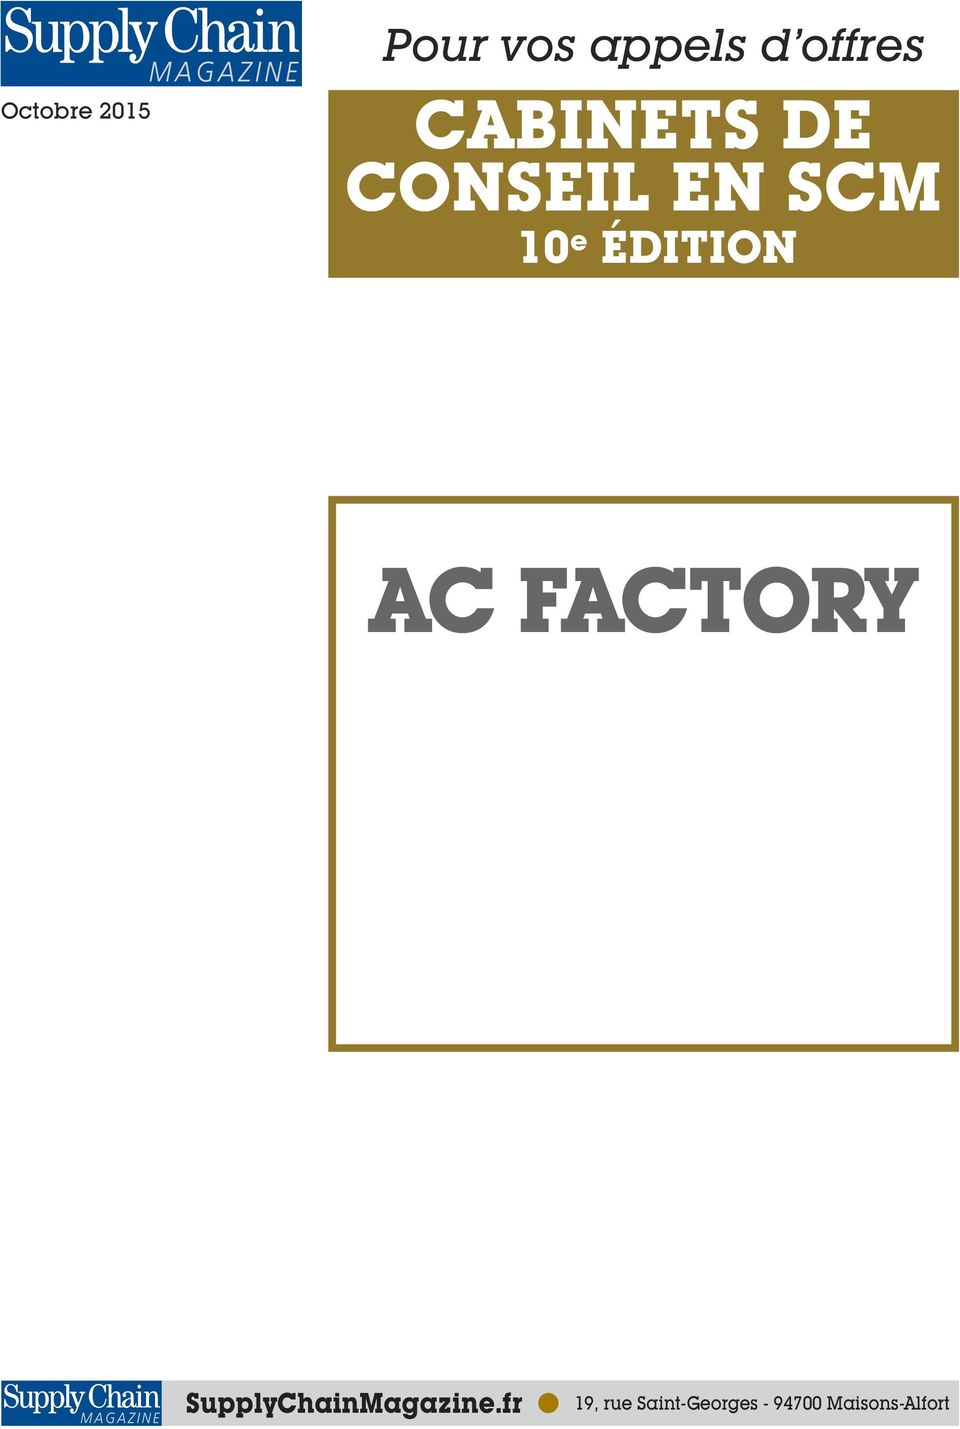 ÉDITION AC FACTORY SupplyChainMagazine.